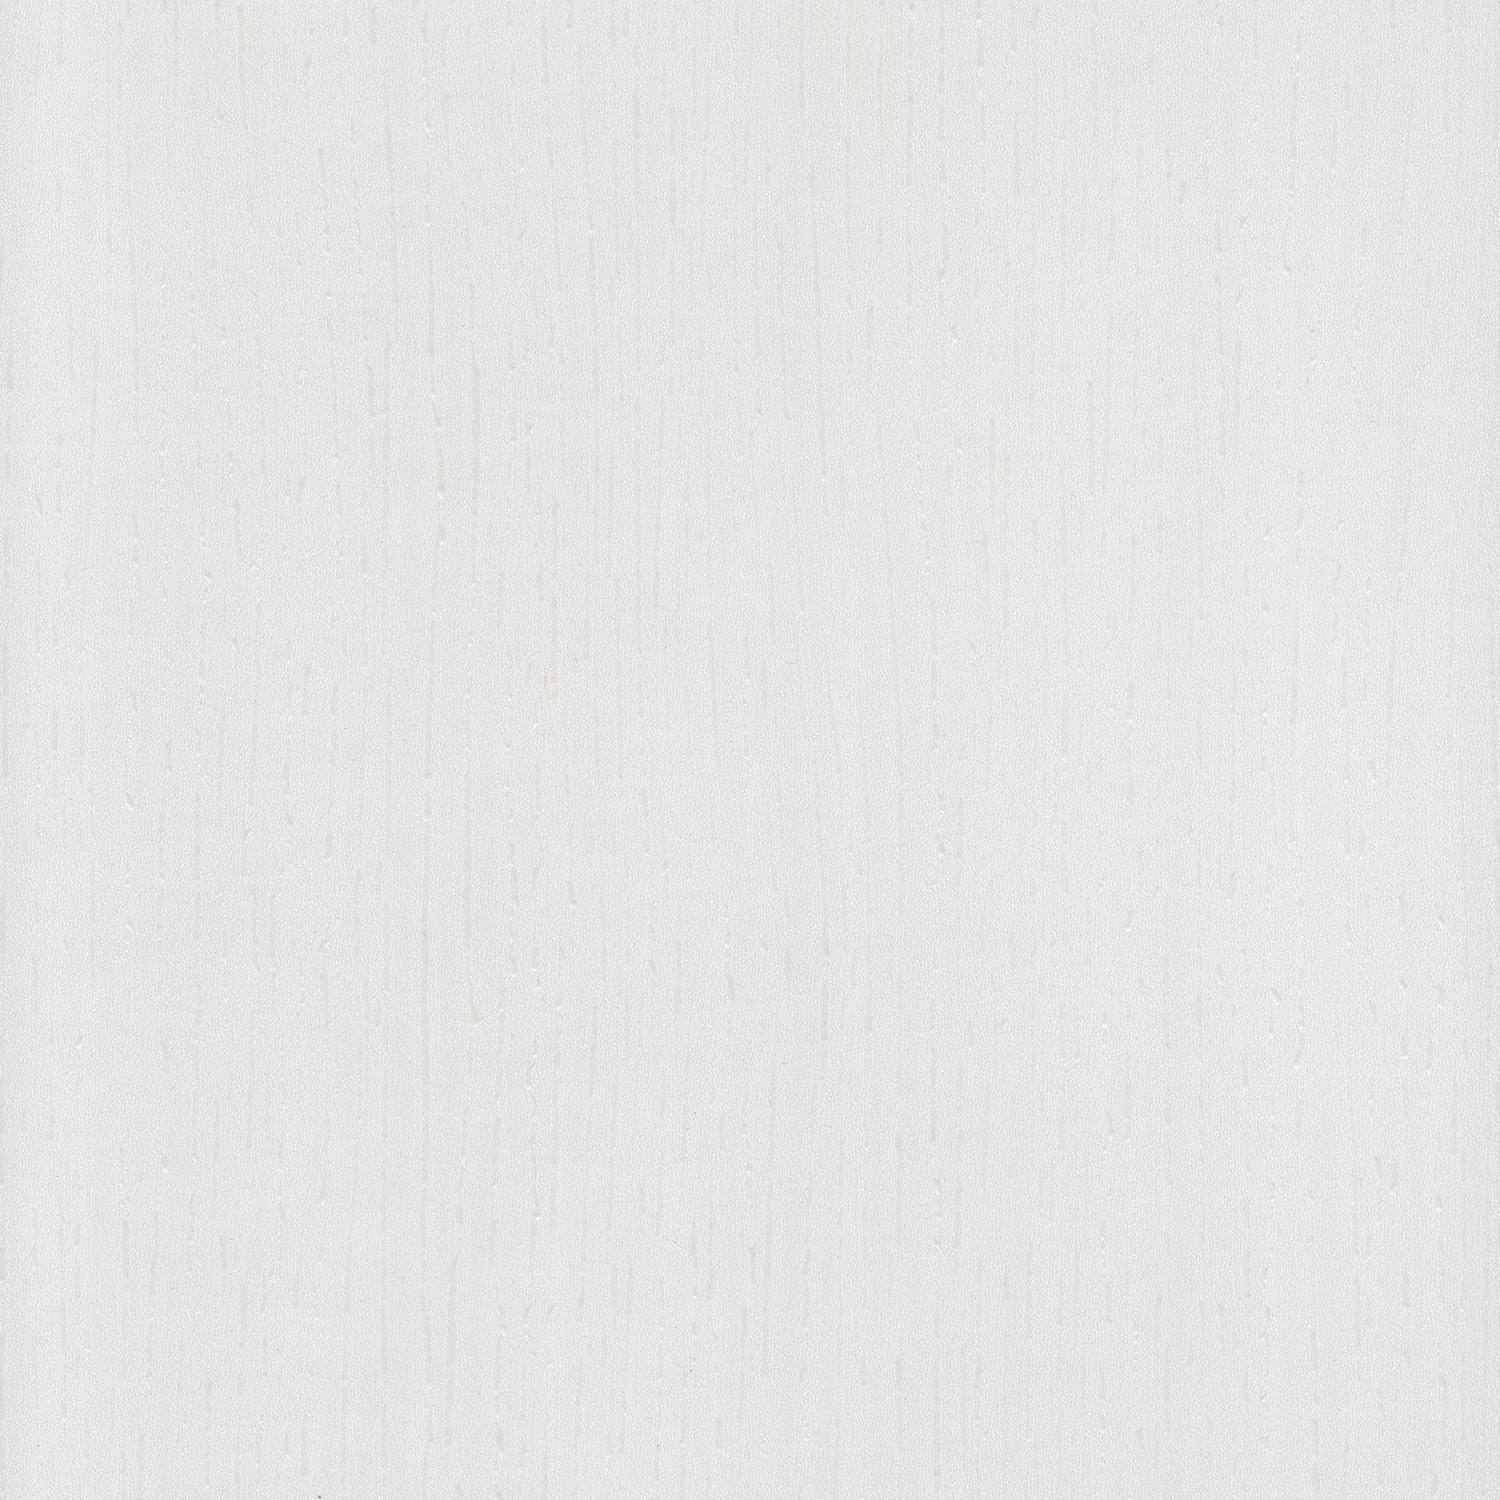 3D Painted Fiberboard White / White 30